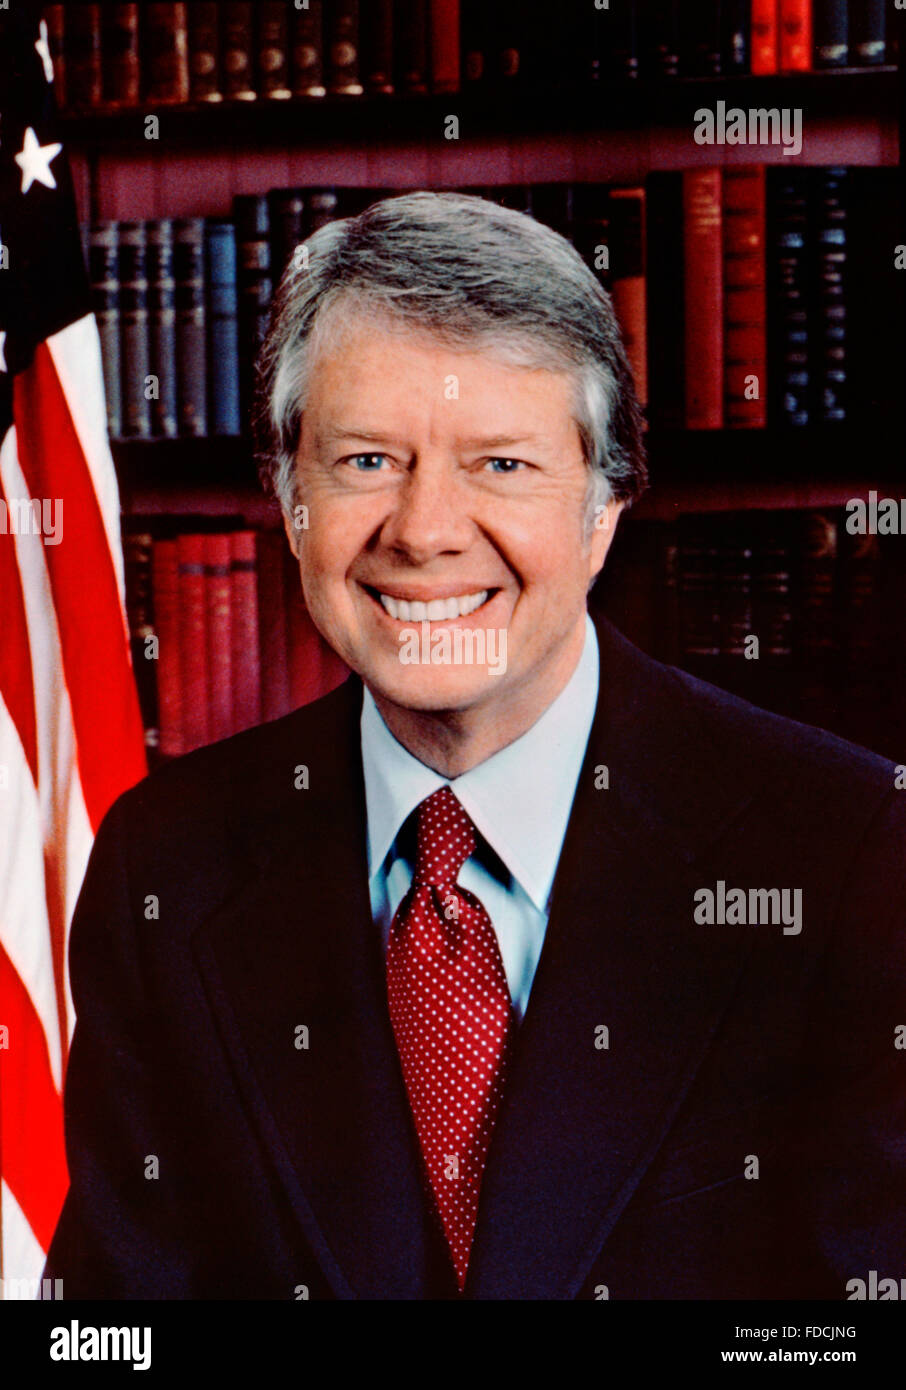 Official White House Portraits Stock Photos Minimal Carter Pleated Shirt Putih S Jimmy 39th President Of The Usa Photo January 1977